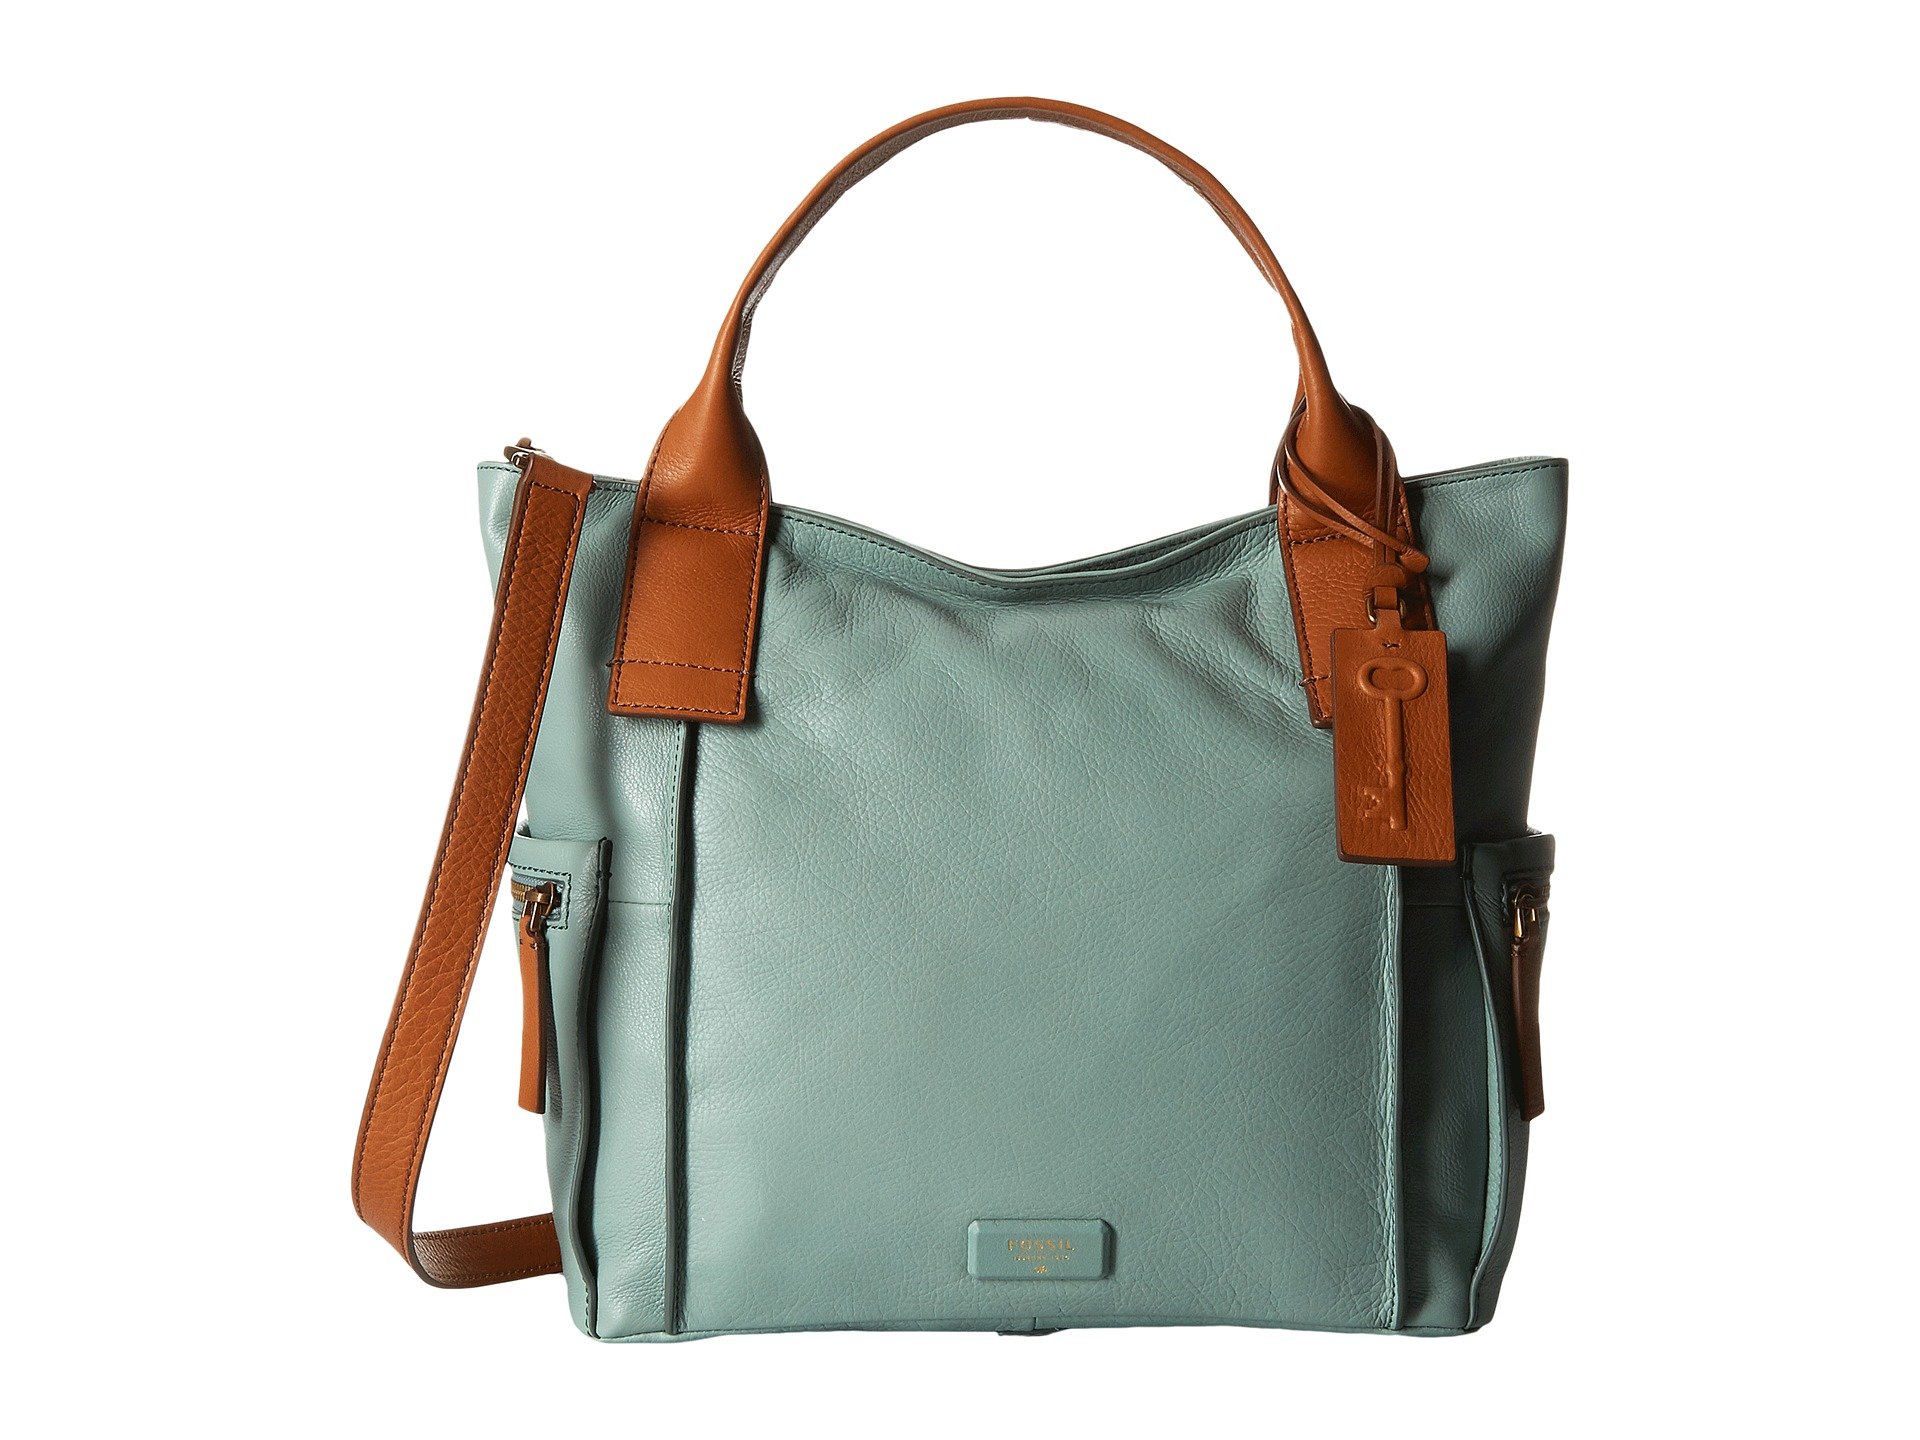 Fossil Emerson Satchel Lucy Bag Images Of